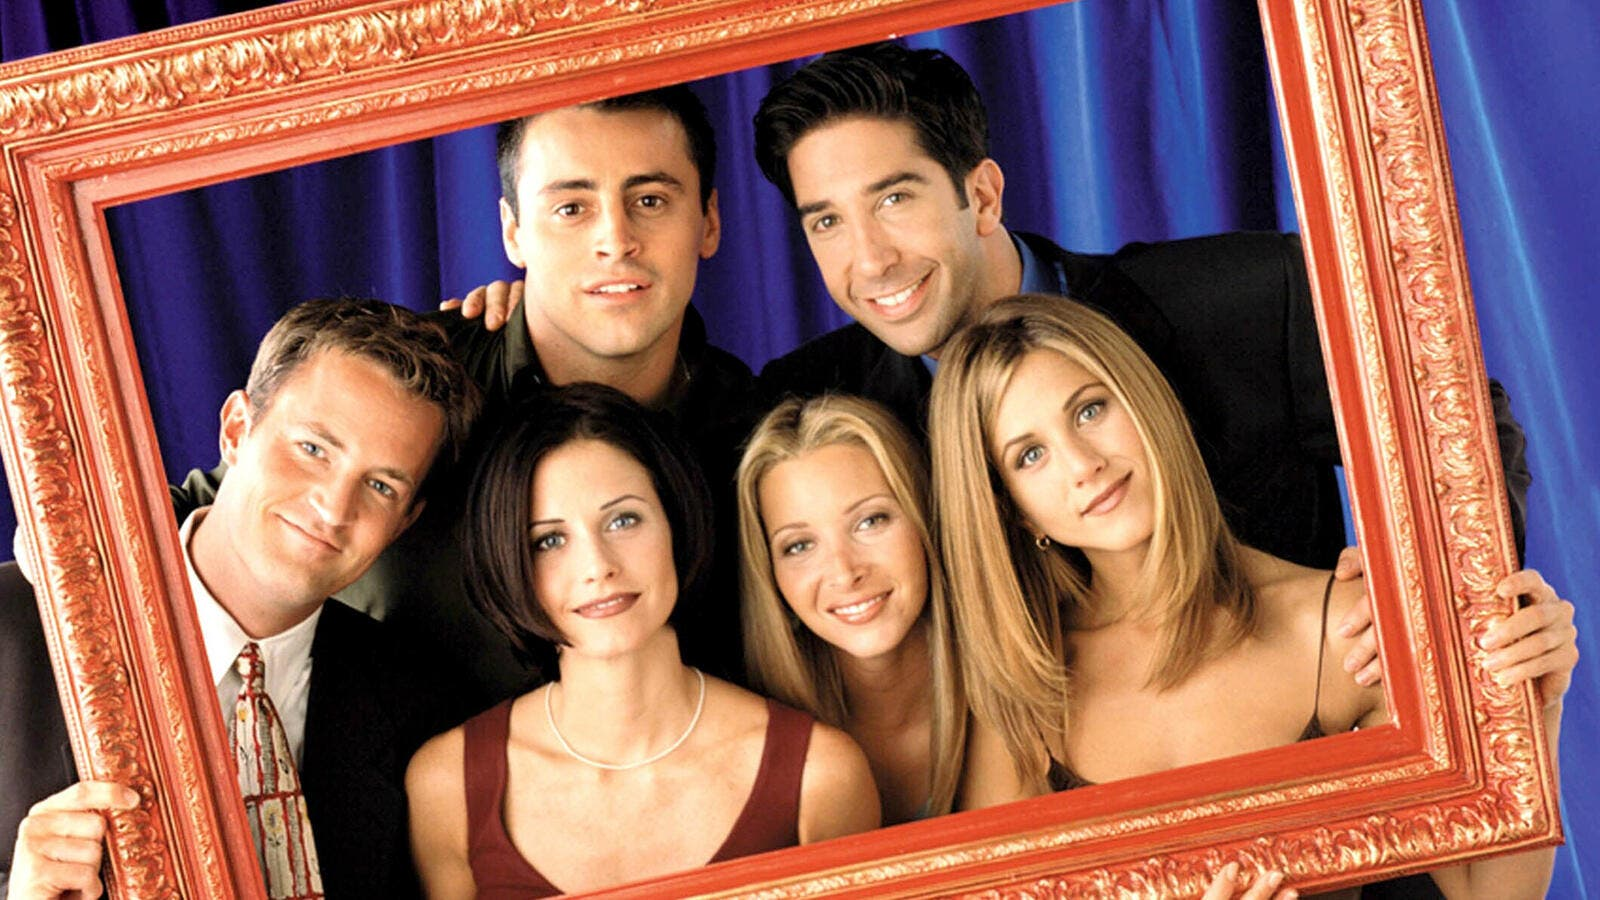 The 'Friends' are reuniting for a special tribute episode next month. (File photo)